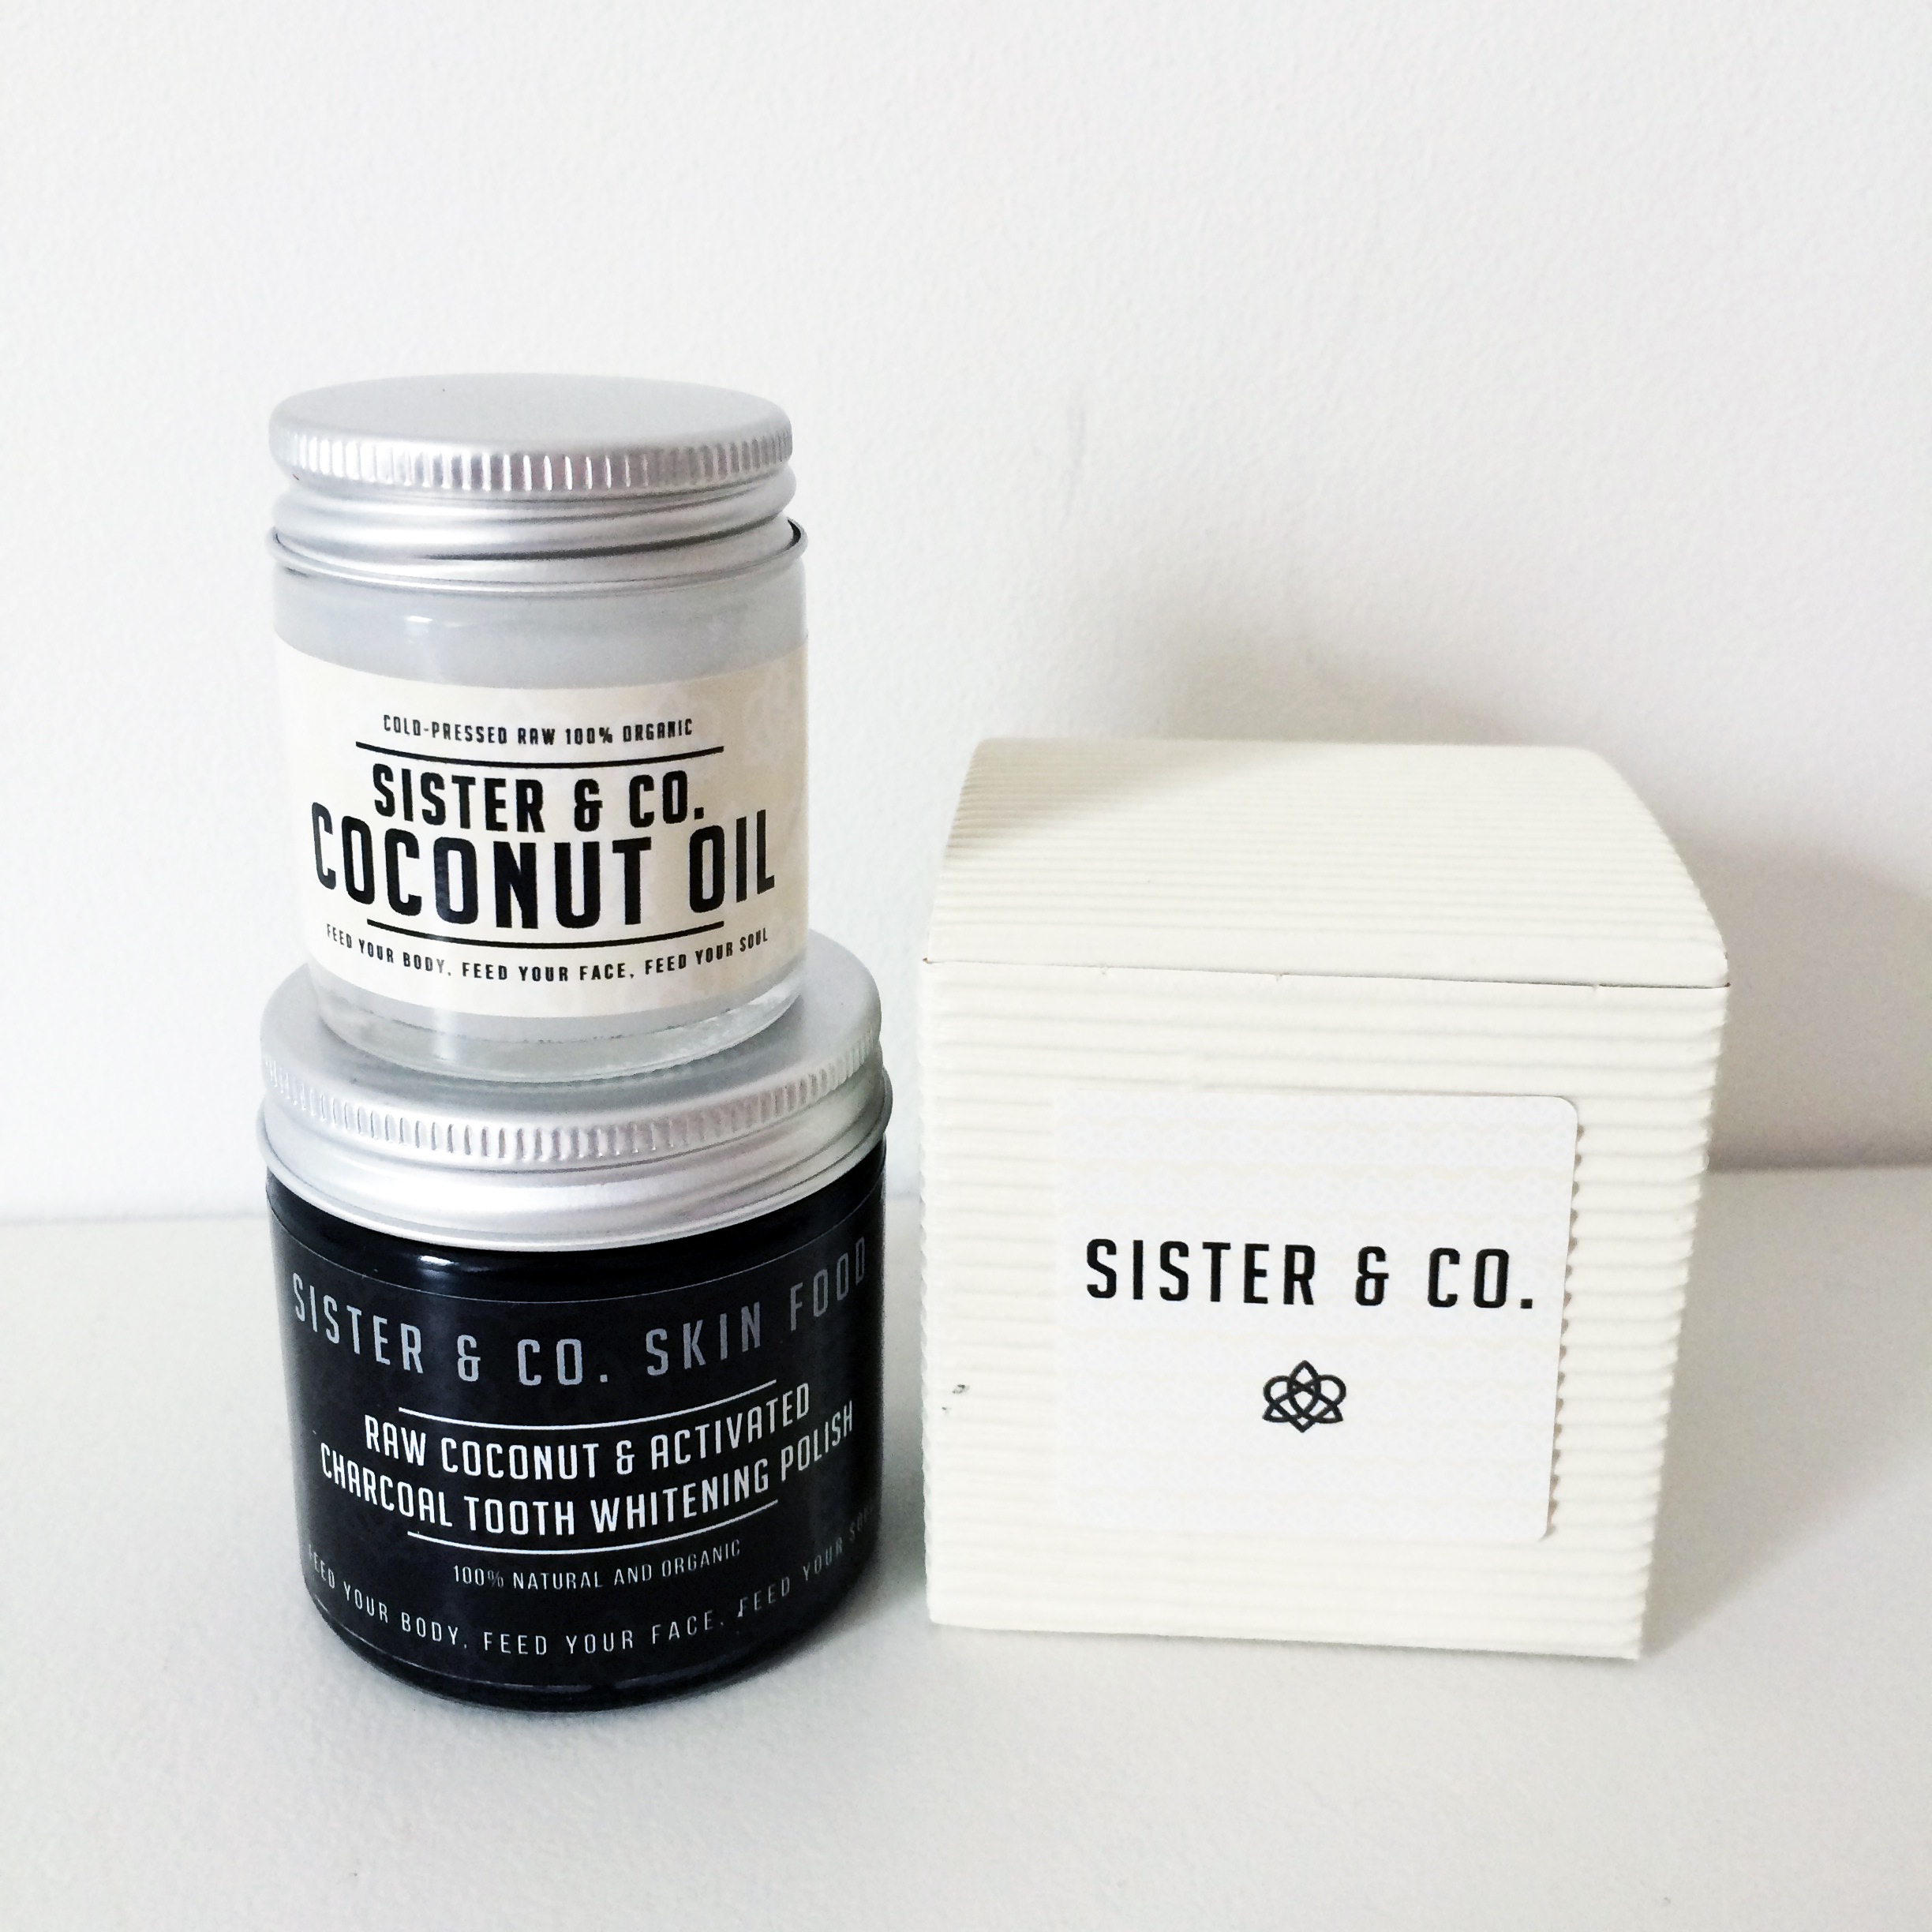 Sister Co Activated Charcoal Tooth Whitening Polish Review The